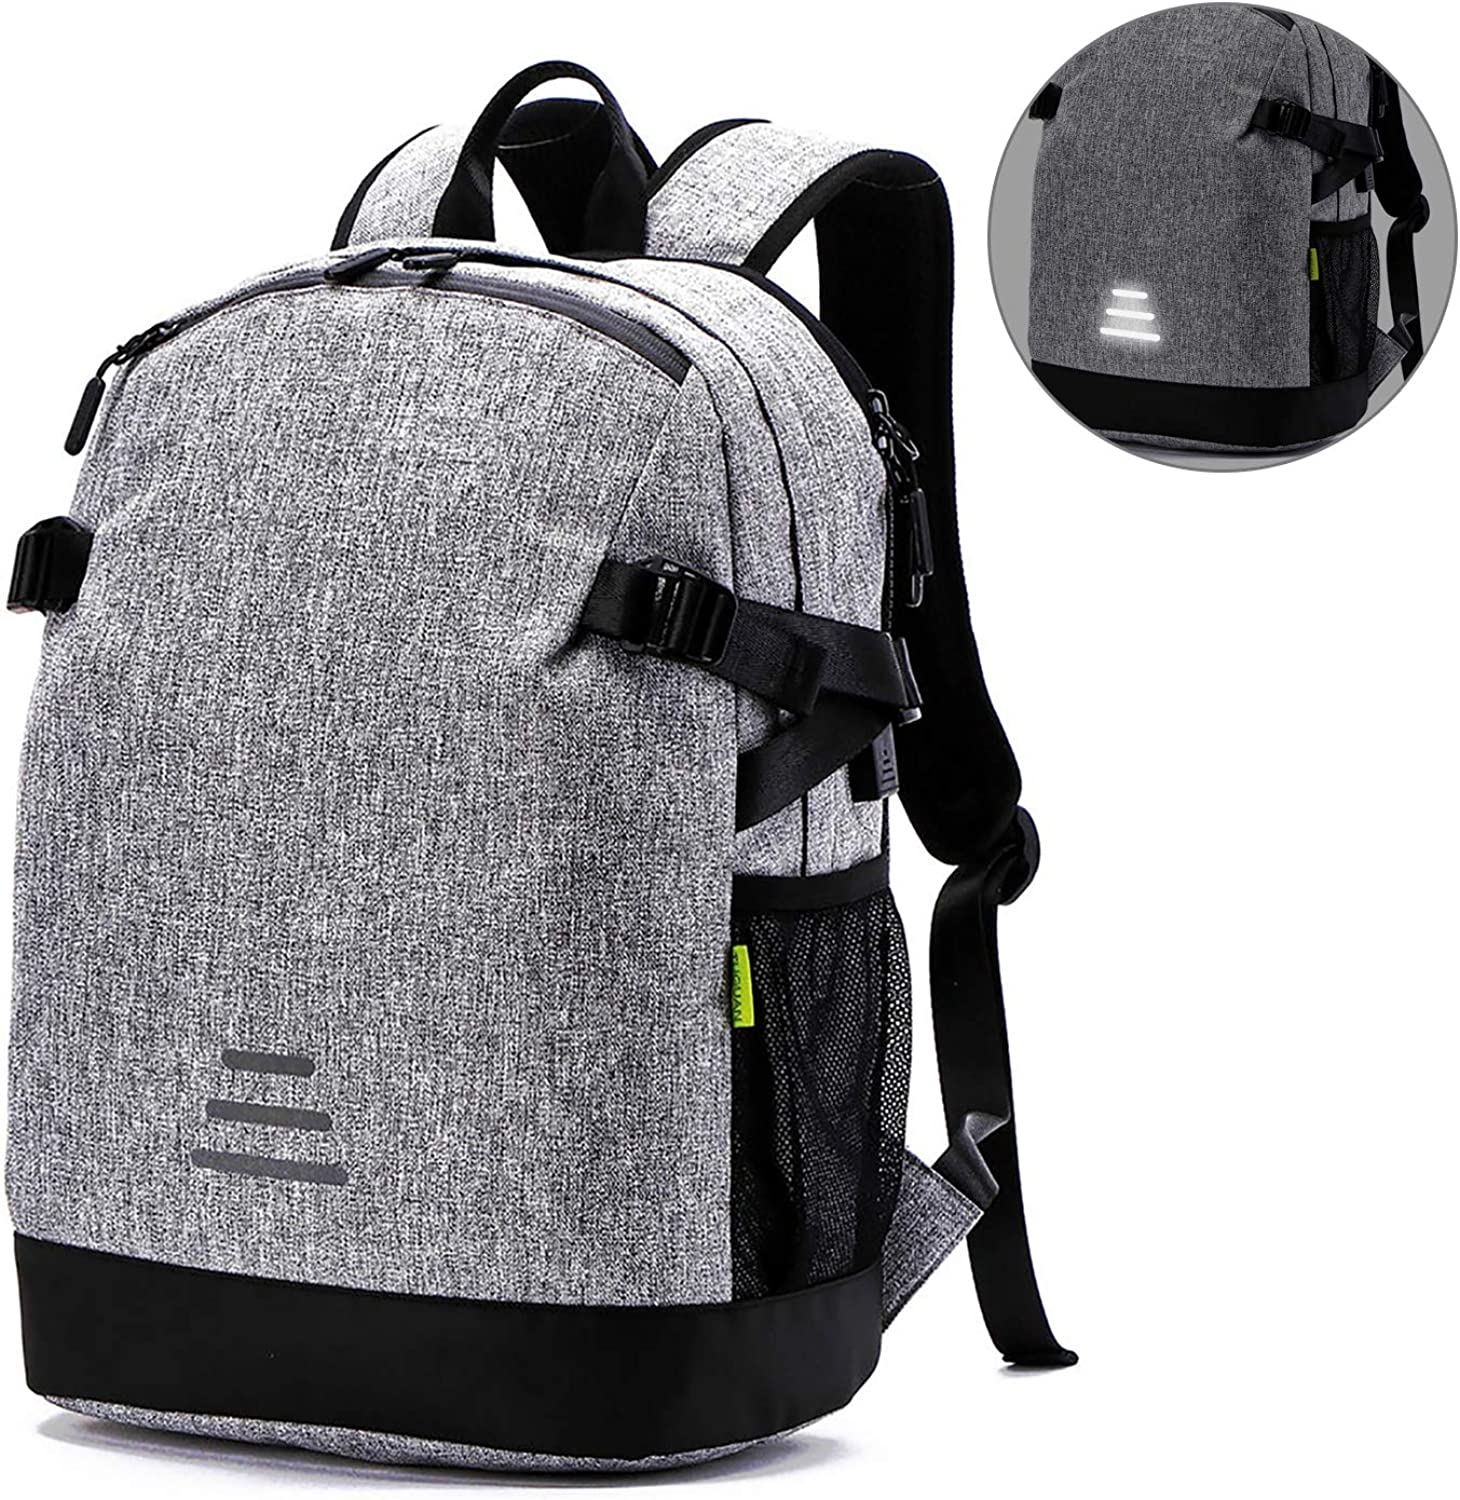 Laptop Backpack,Computer Backpack with USB Charging Port and Reflective Stripe,Water Resistant 15.6 Inch Travel Business Notebook Daypack for Women Men-Grey